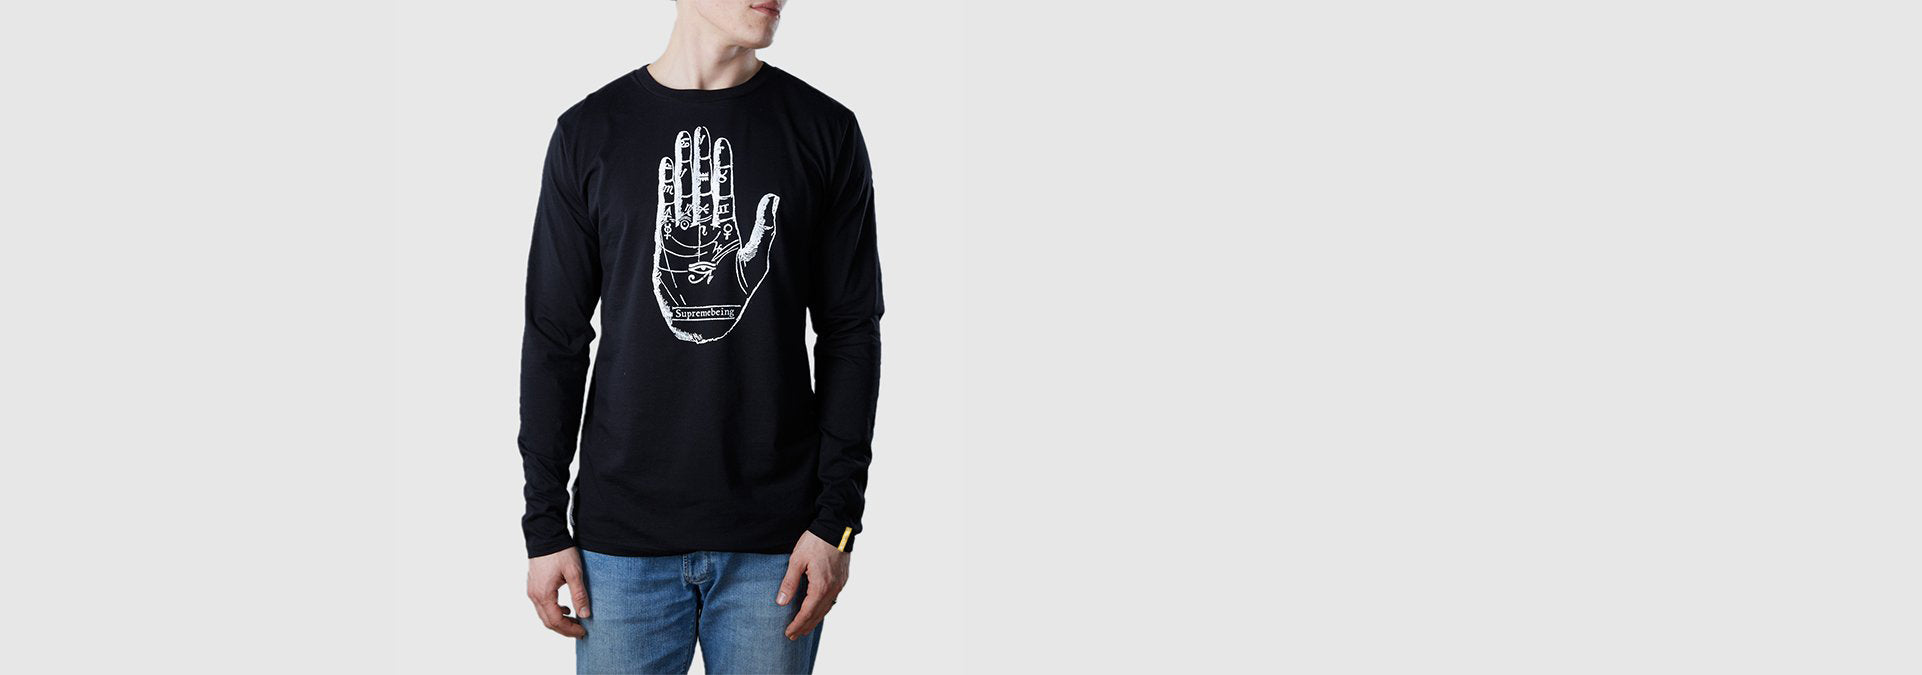 Mystic Hand Organic Cotton L/S T-Shirt Black